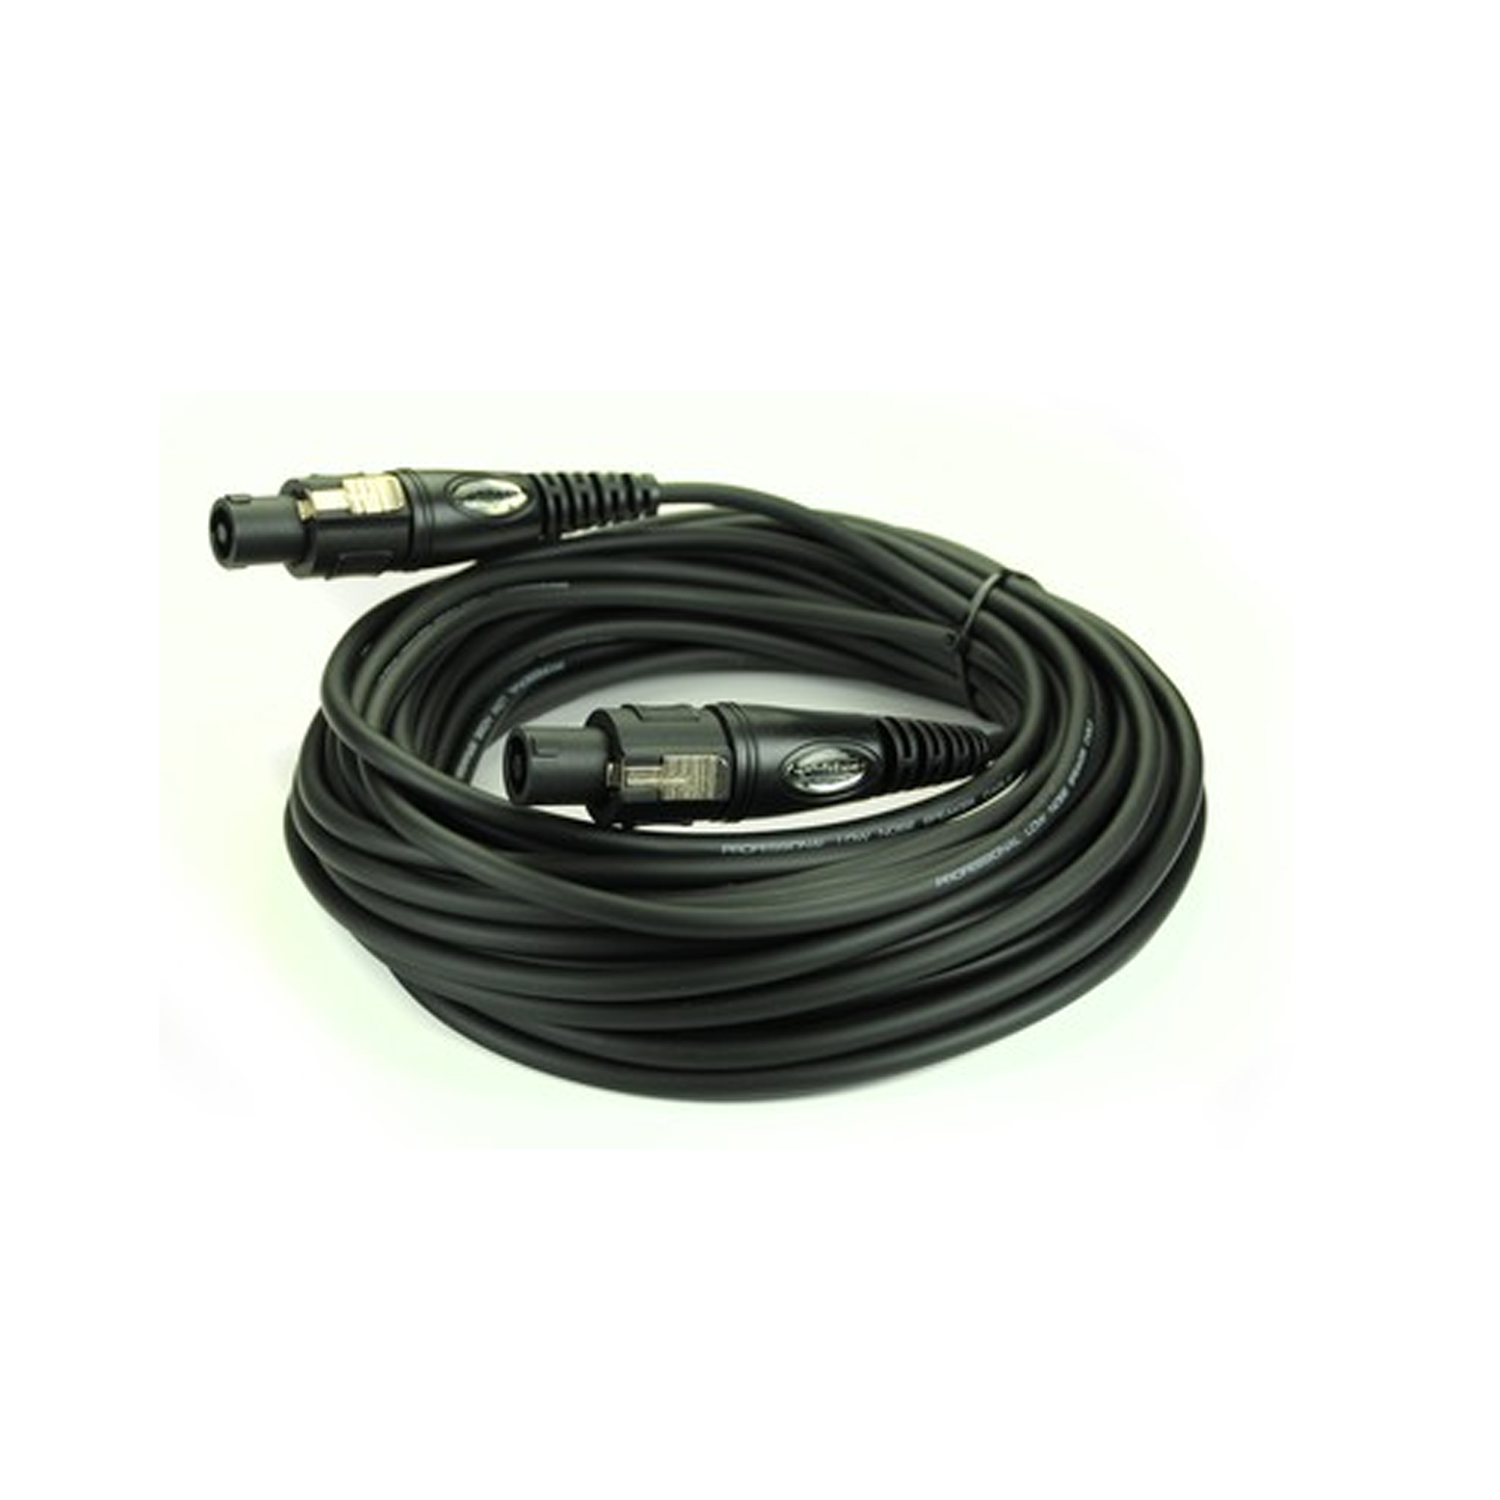 Speaker Cables - Whirlwind Speaker Cable 50ft